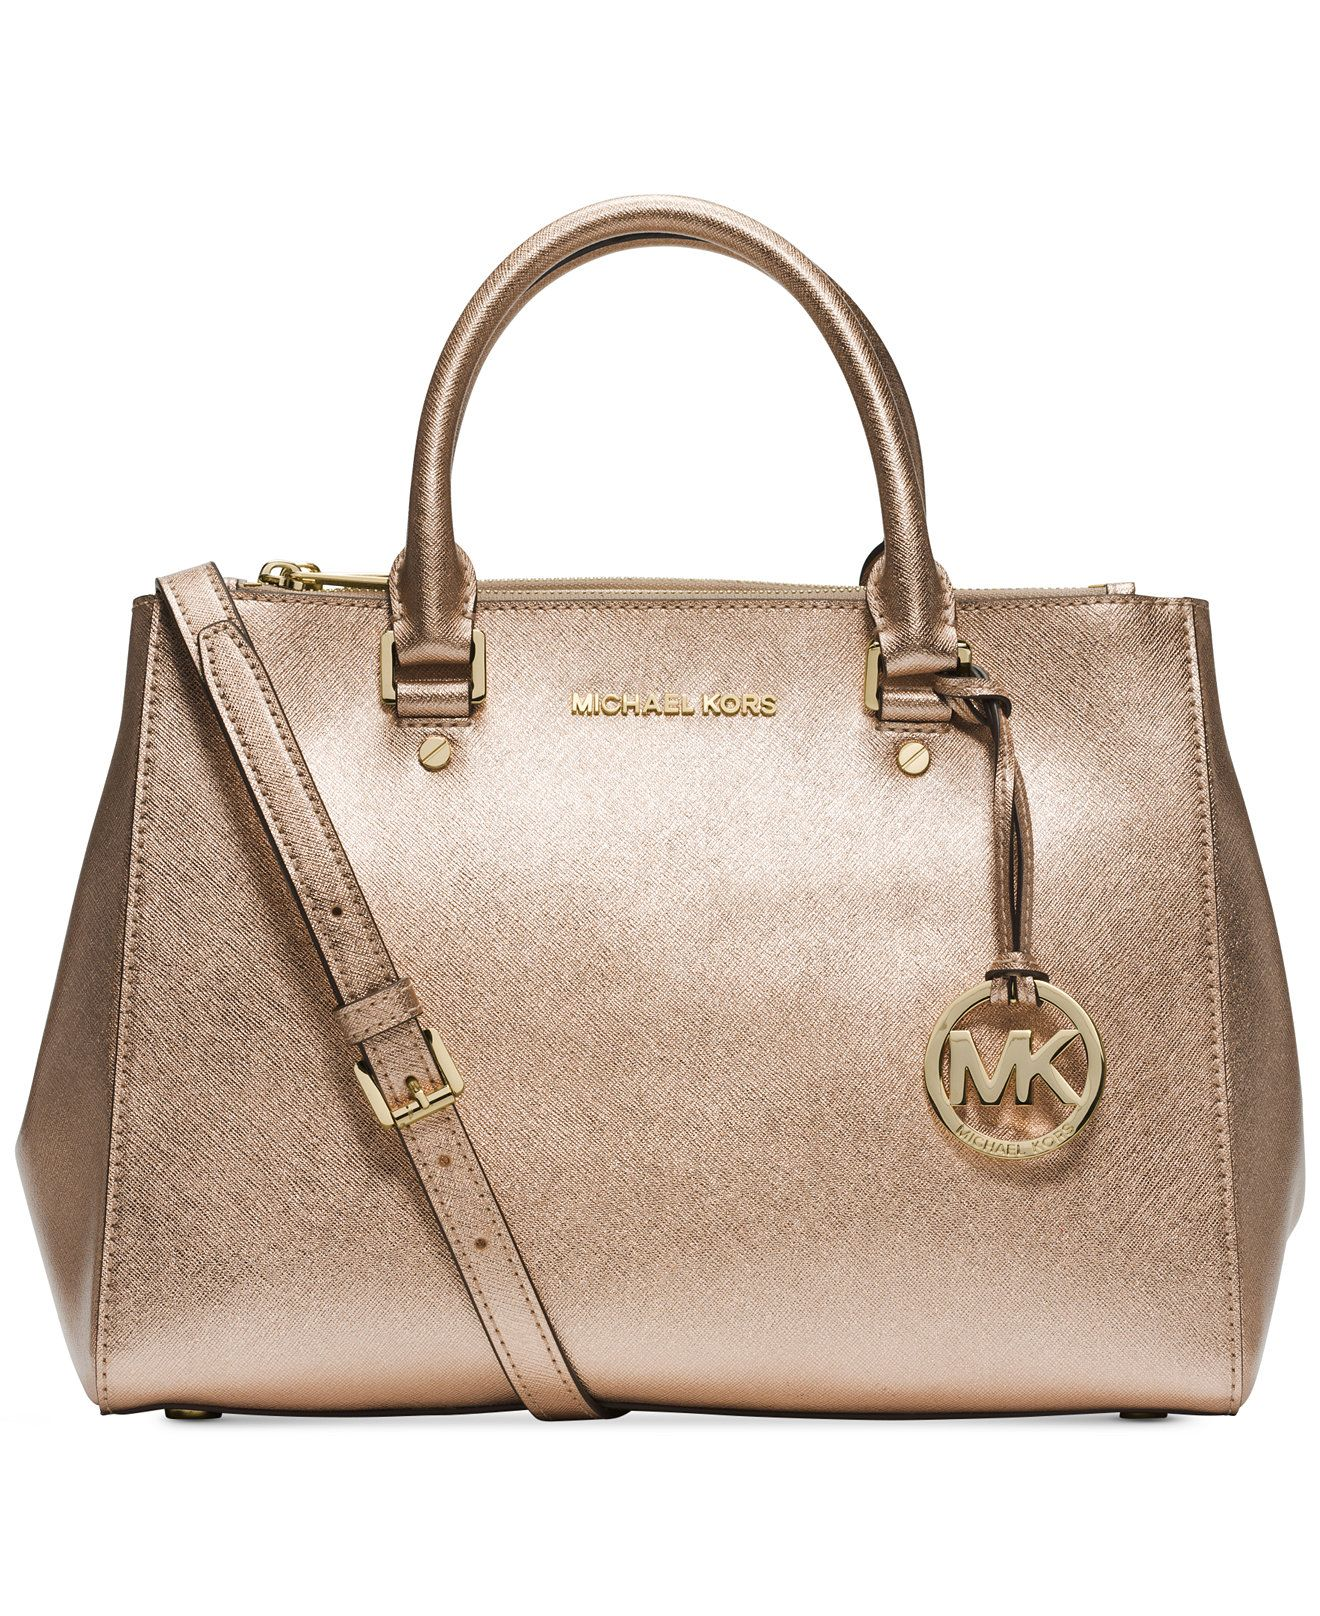 MICHAEL Michael Kors Sutton Medium Satchel - Handbags \u0026 Accessories - Macy\u0027s